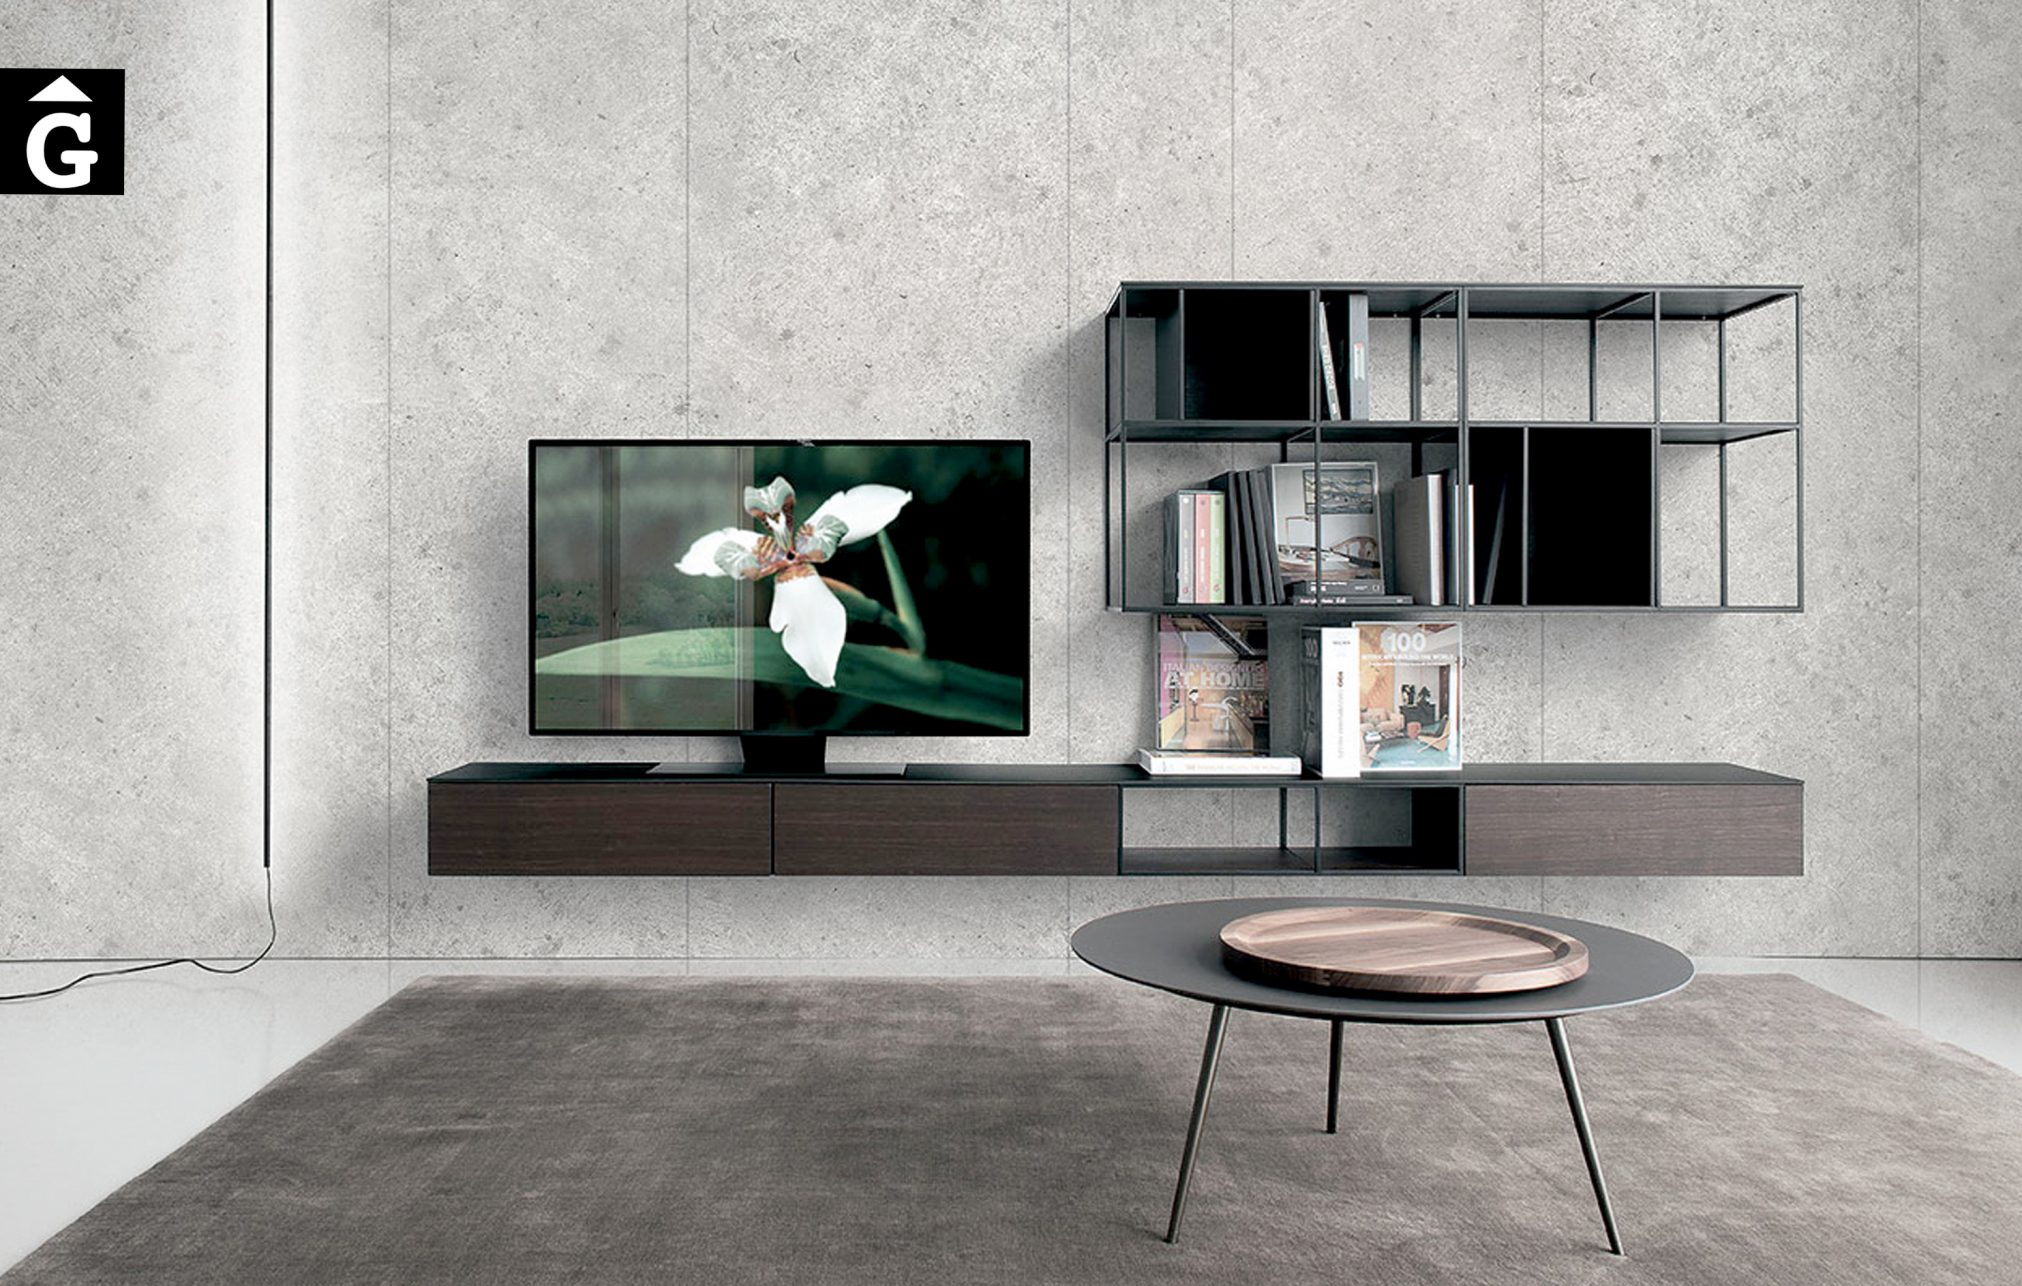 Moble Tv Atelier AT6 frontal Extendo Design Source by mobles Gifreu botiga elements interiors